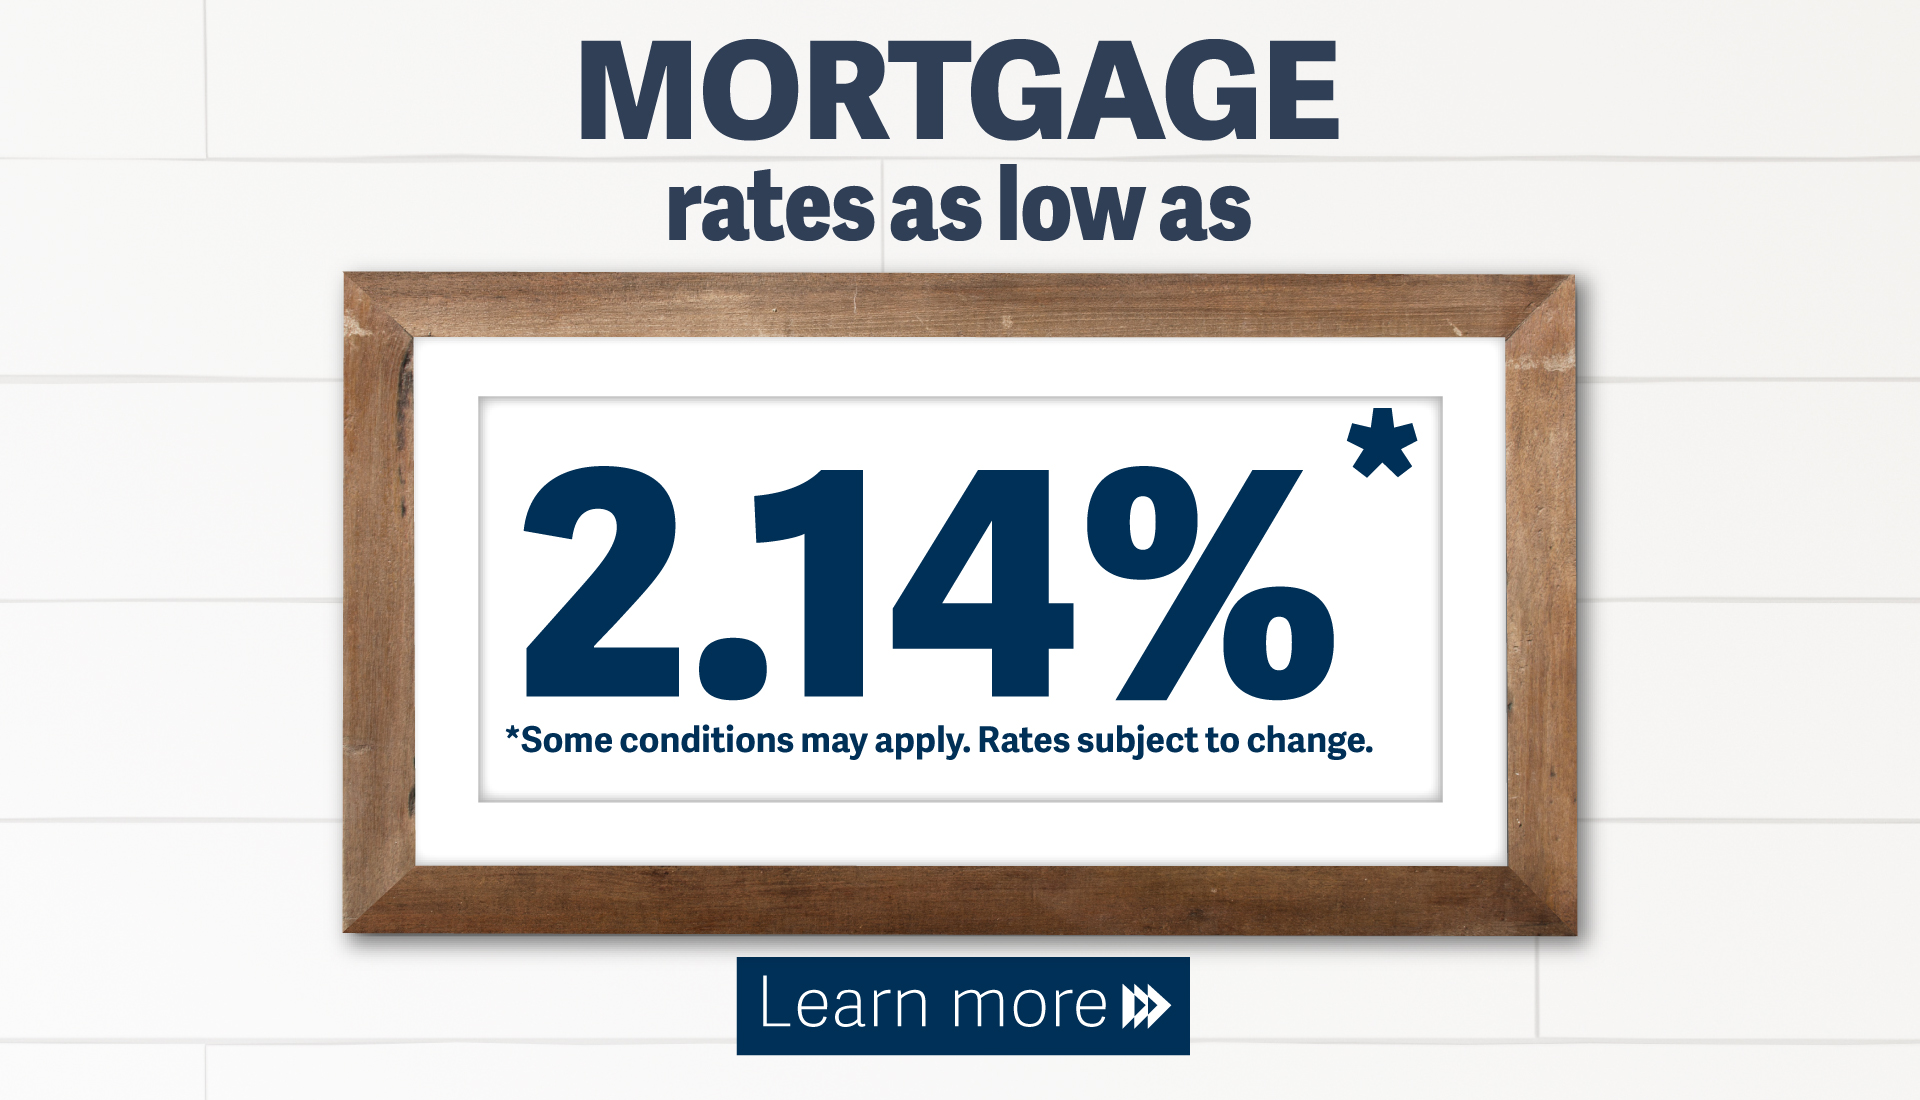 Mortgage rates as low as 2.14%*